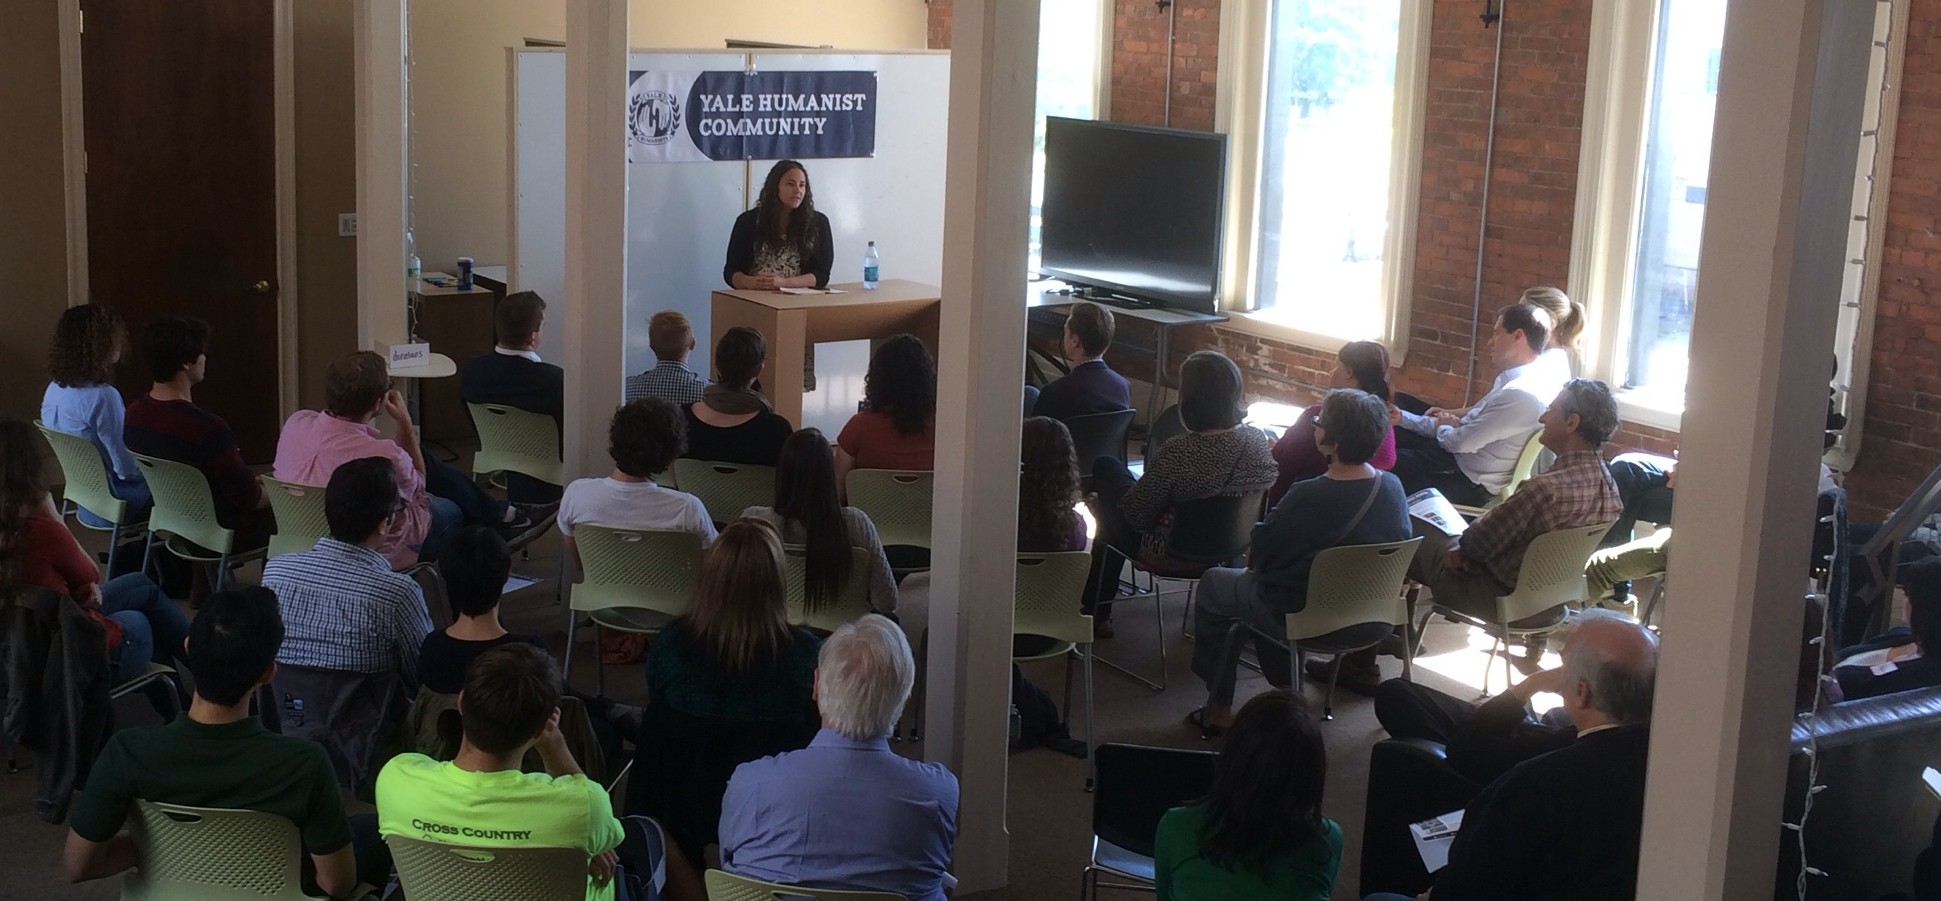 A meeting of Humanist Haven, sponsored by Yale Humanist Community.